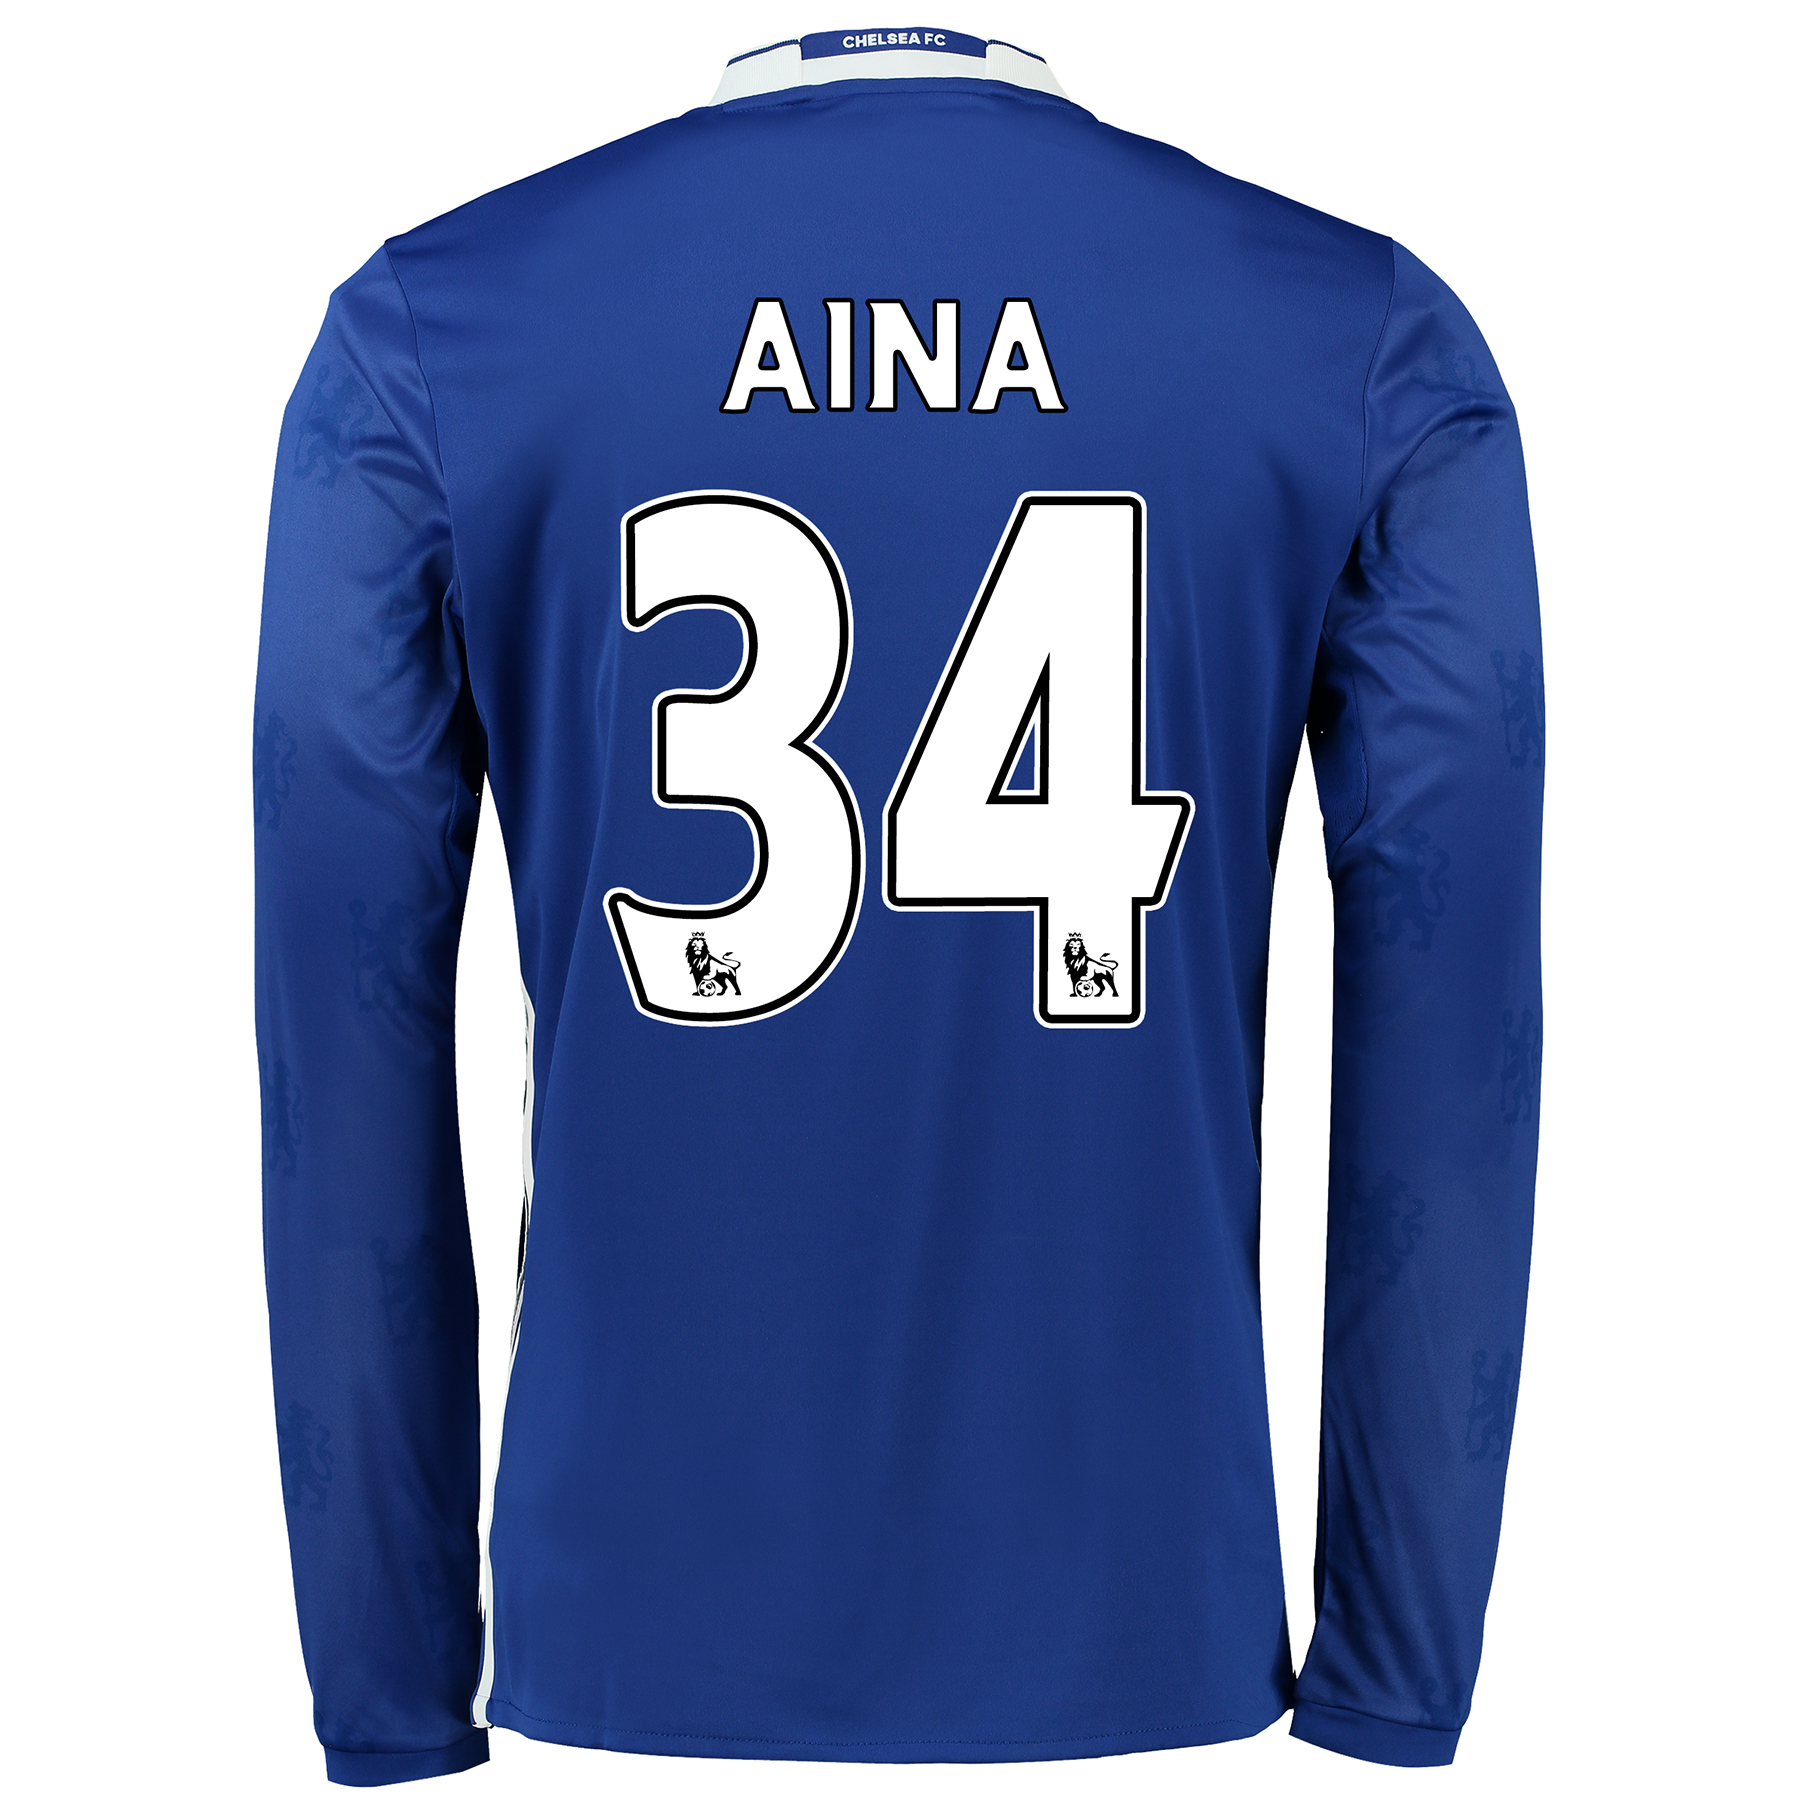 Chelsea Home Shirt 2016-17 - Long Sleeve with Aina 34 printing